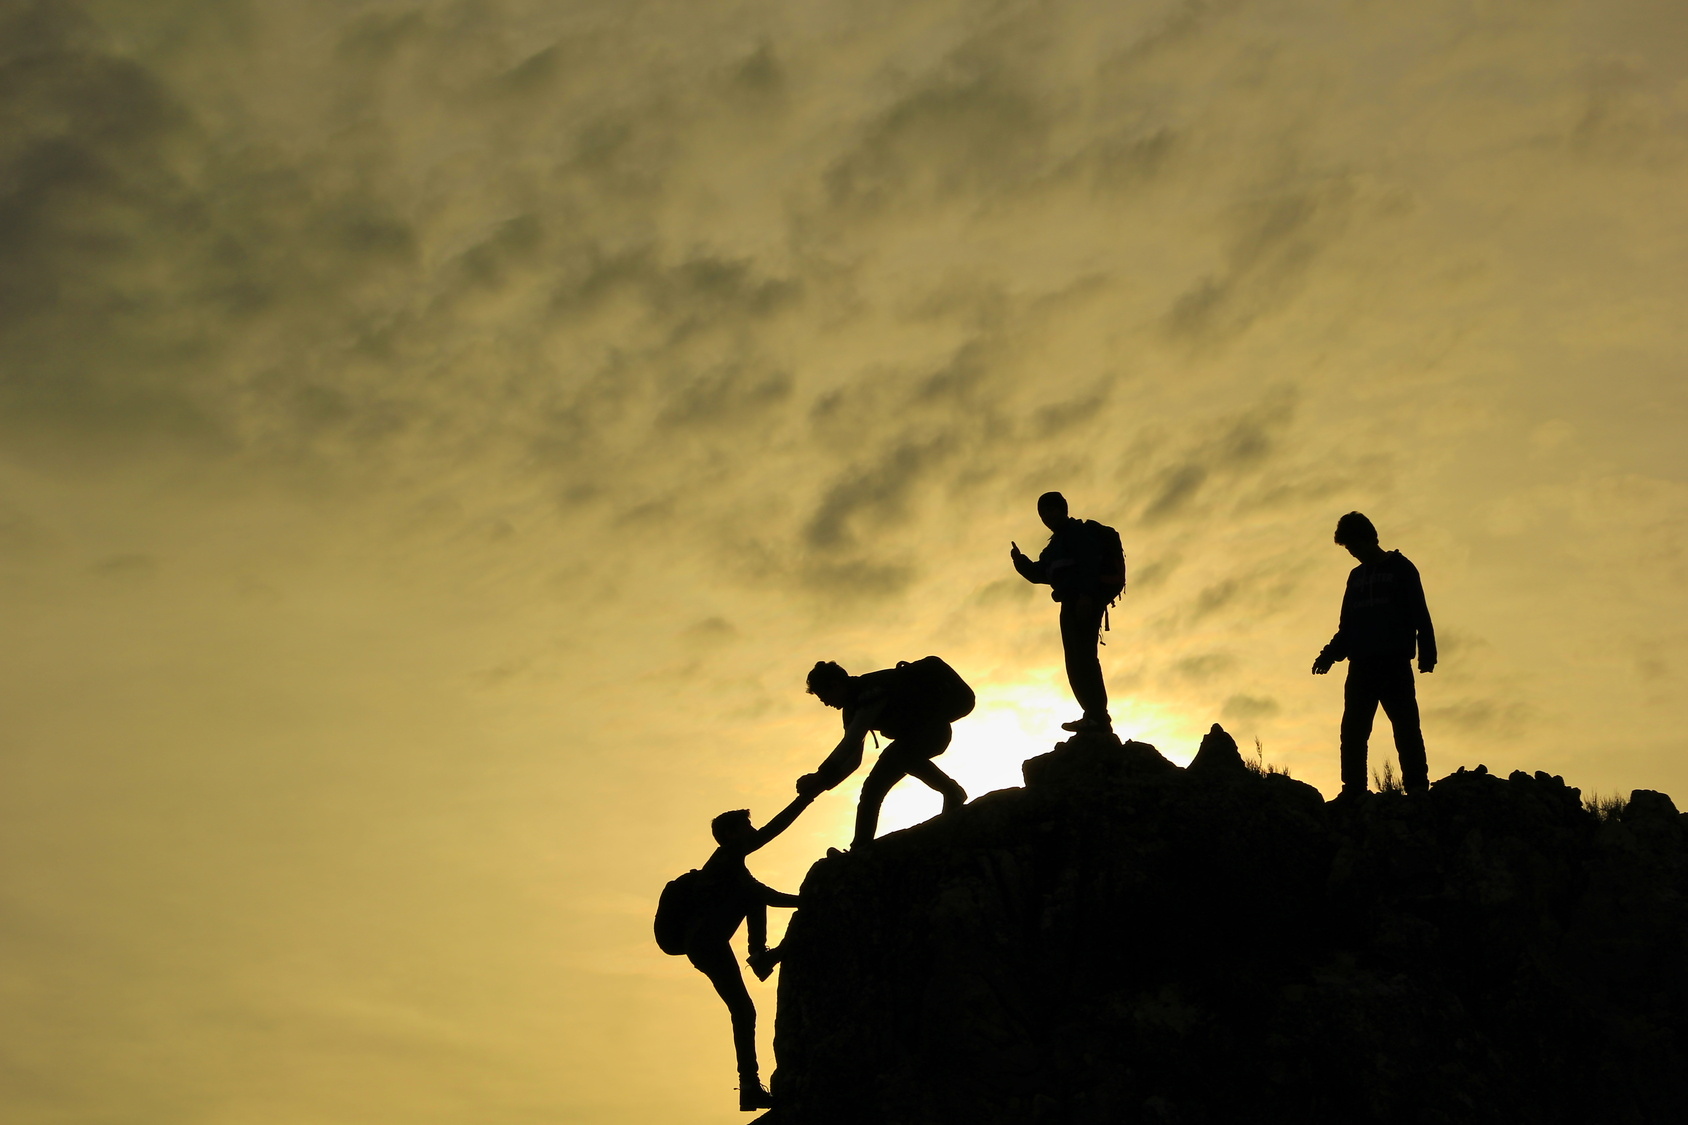 challenging_challenge_climb_cliff_group_help_together-1.jpg